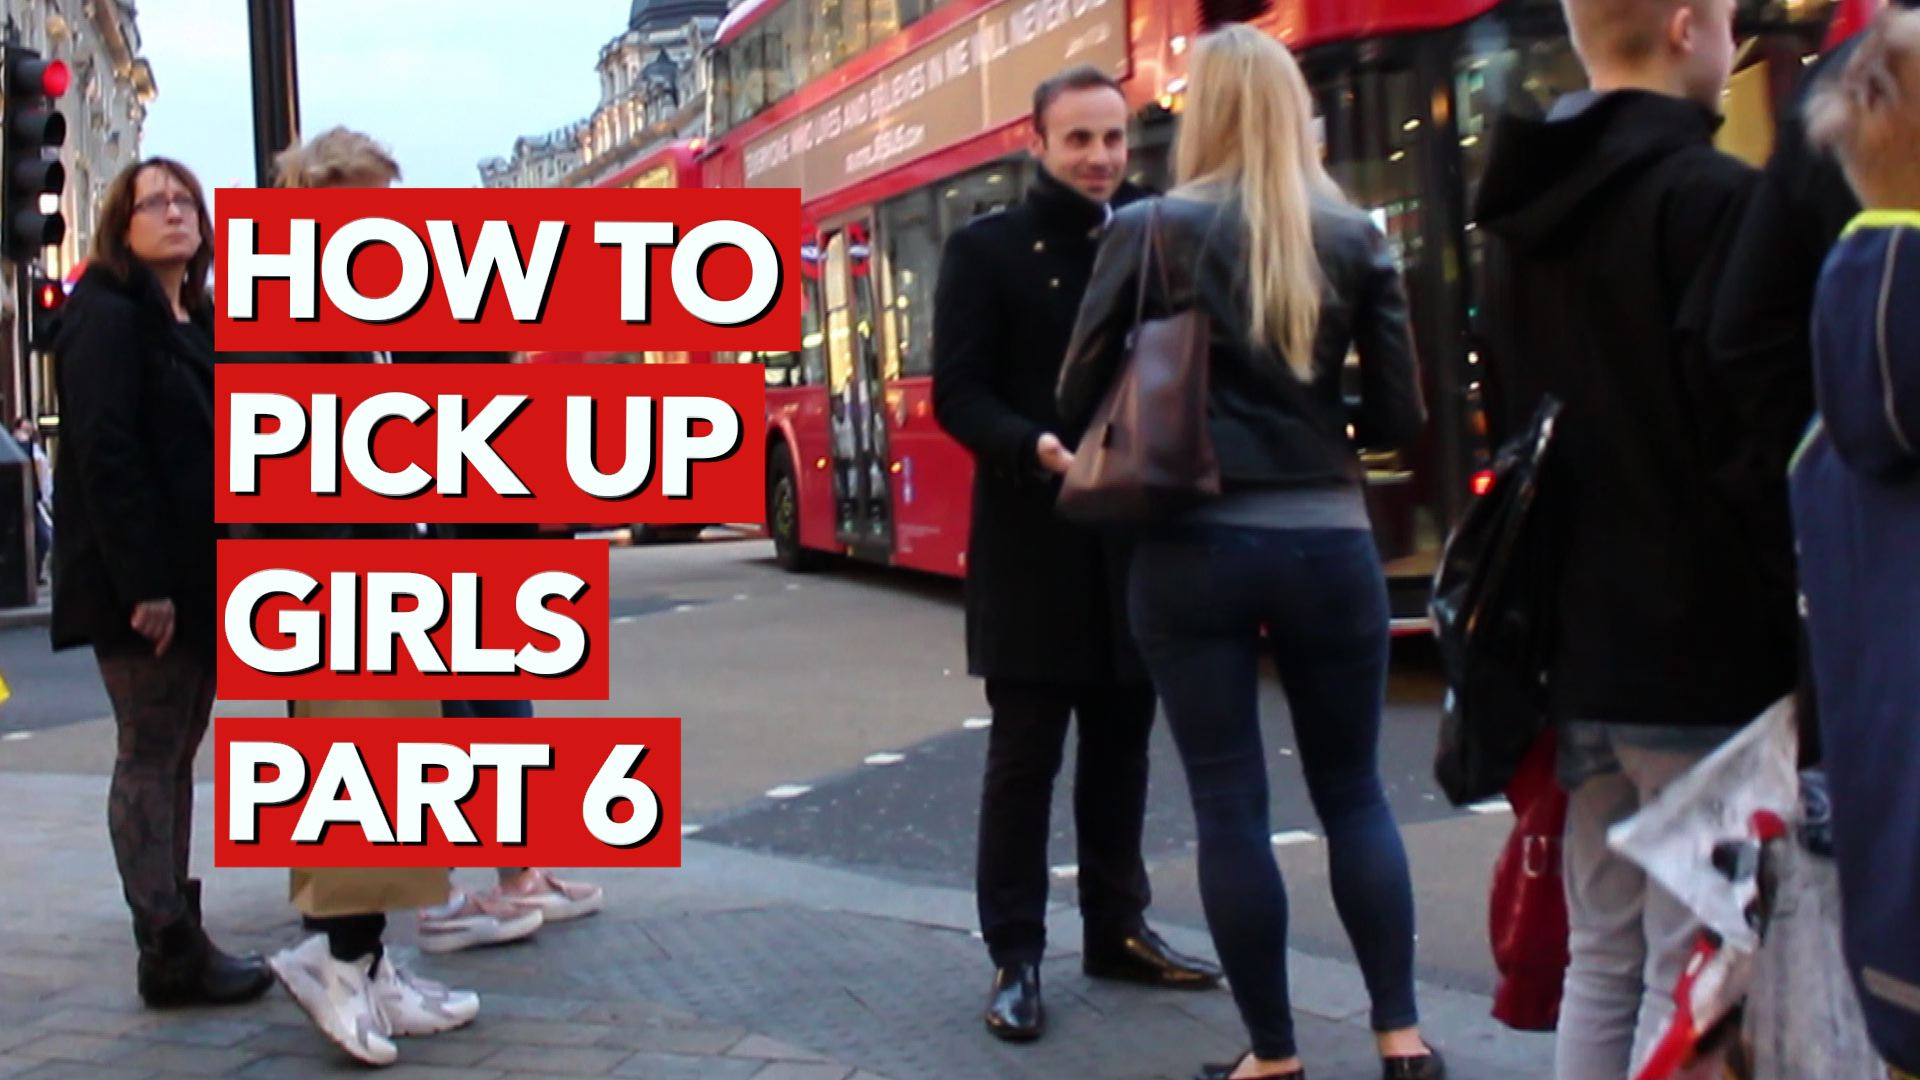 How to bring up dating to a girl